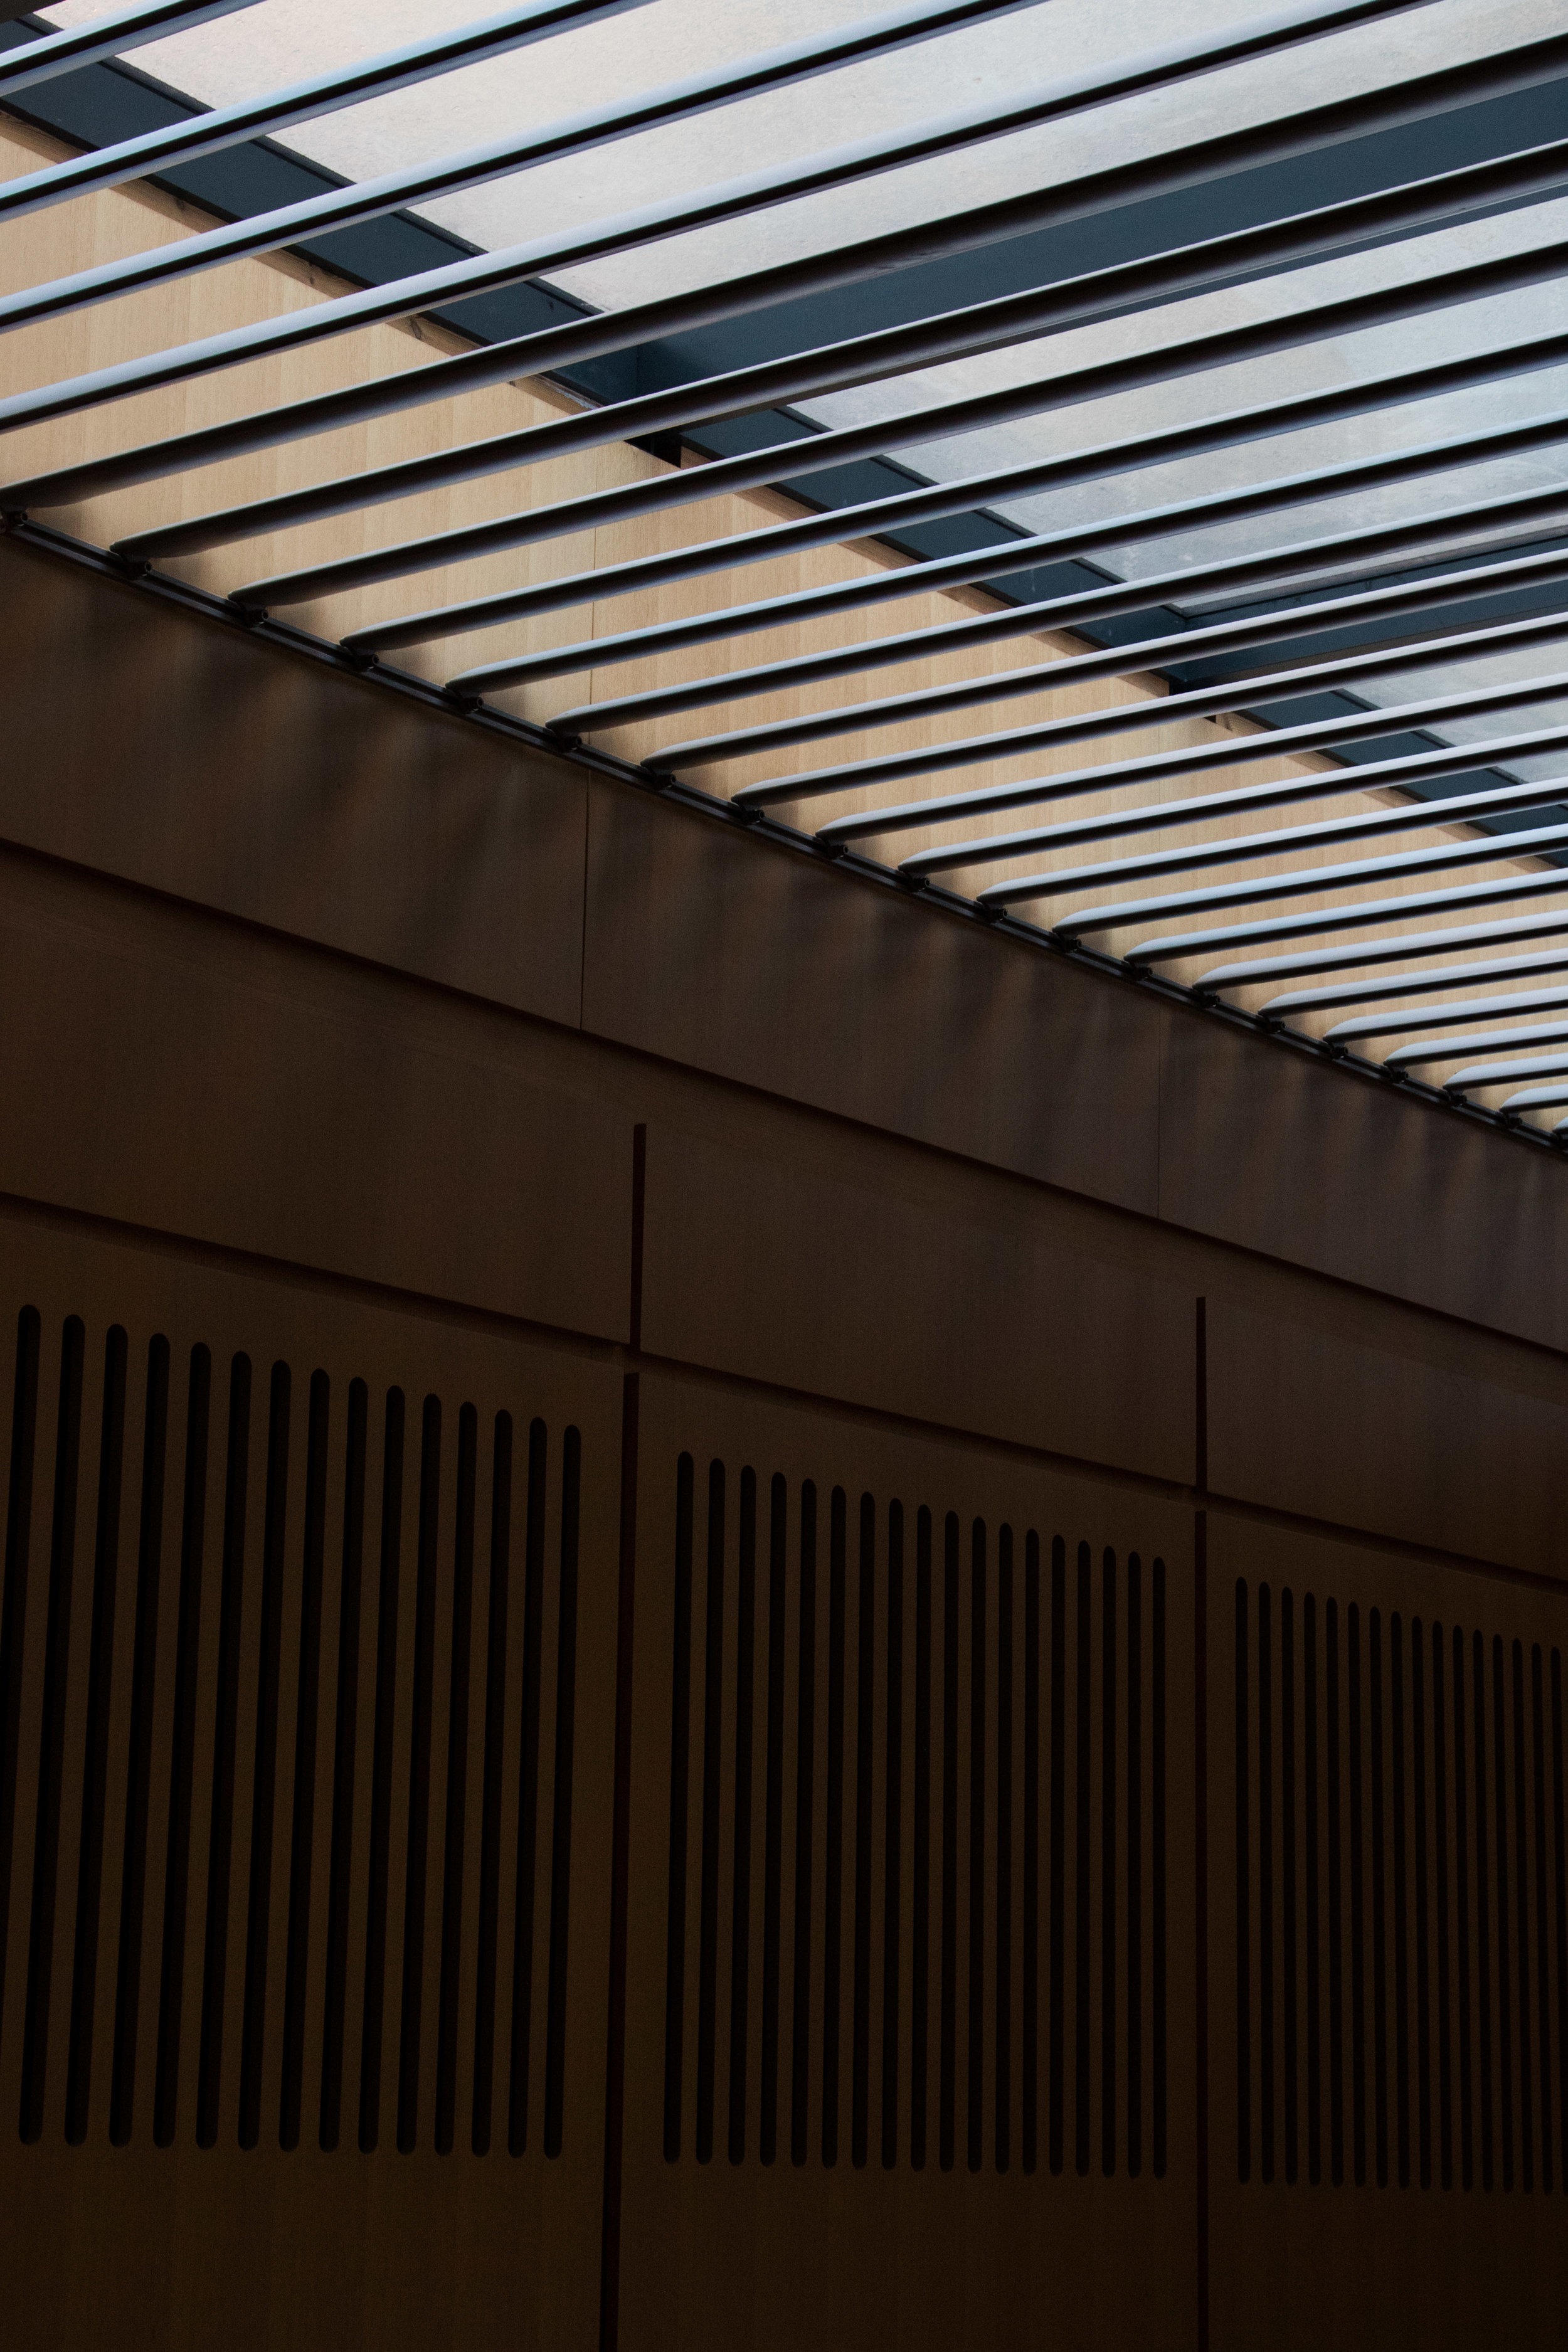 sky light in the lecture theature, Nottingham Masterclass, Image by Richard Hargrave.jpg